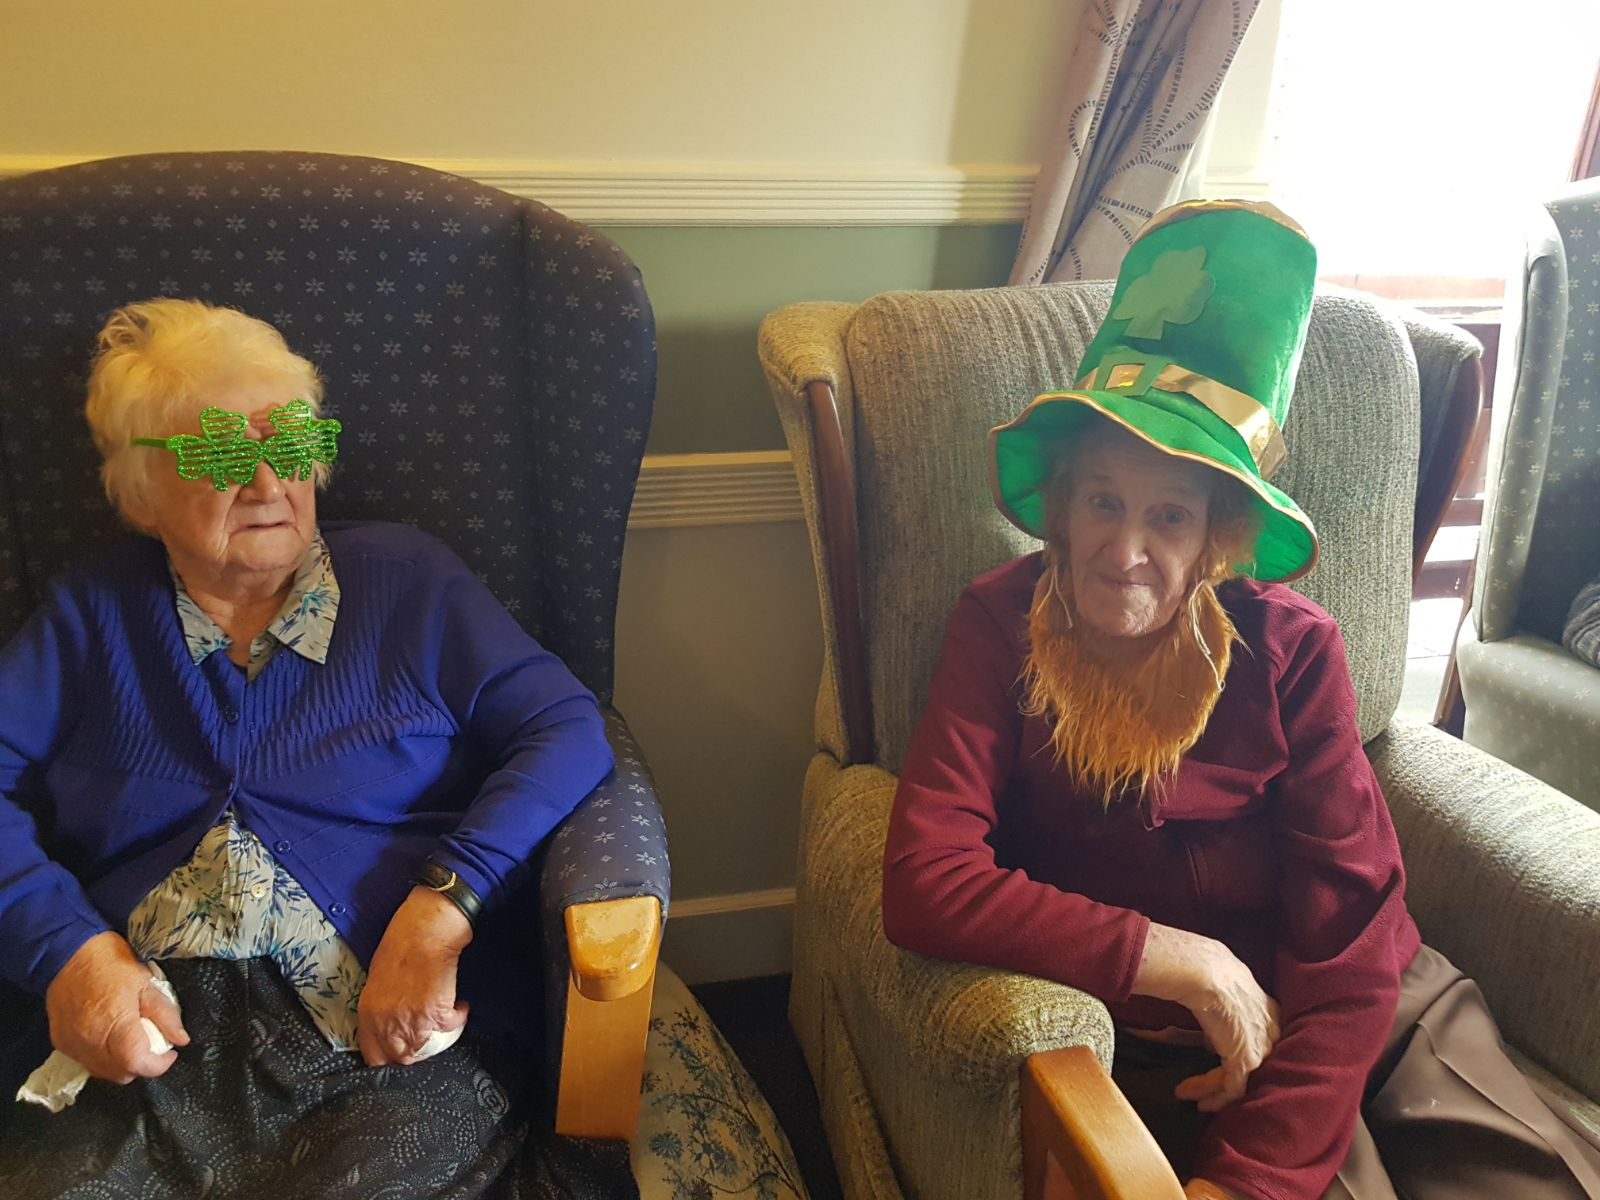 St Patrick's Day 2018: Key Healthcare is dedicated to caring for elderly residents in safe. We have multiple dementia care homes including our care home middlesbrough, our care home St. Helen and care home saltburn. We excel in monitoring and improving care levels.